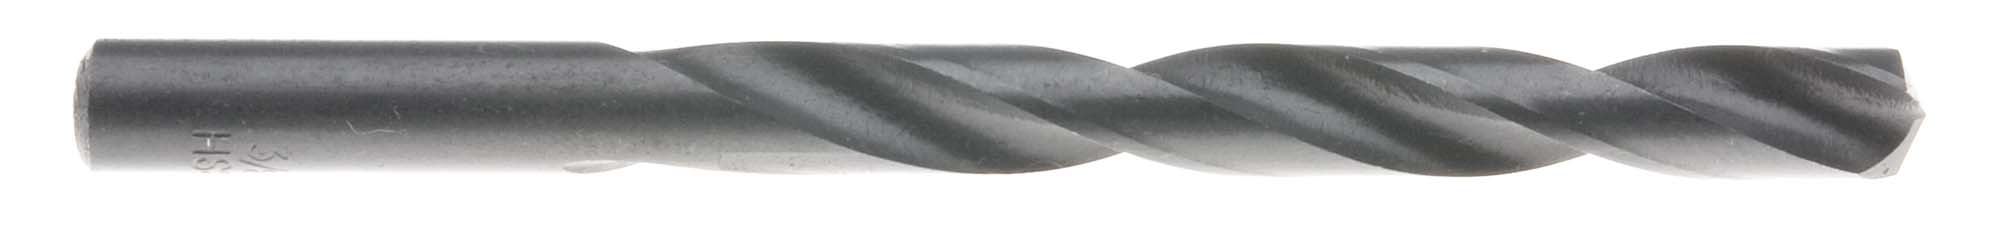 "F (.257"") Heavy Duty Split Point Jobber Drill Bit, High Speed Steel"